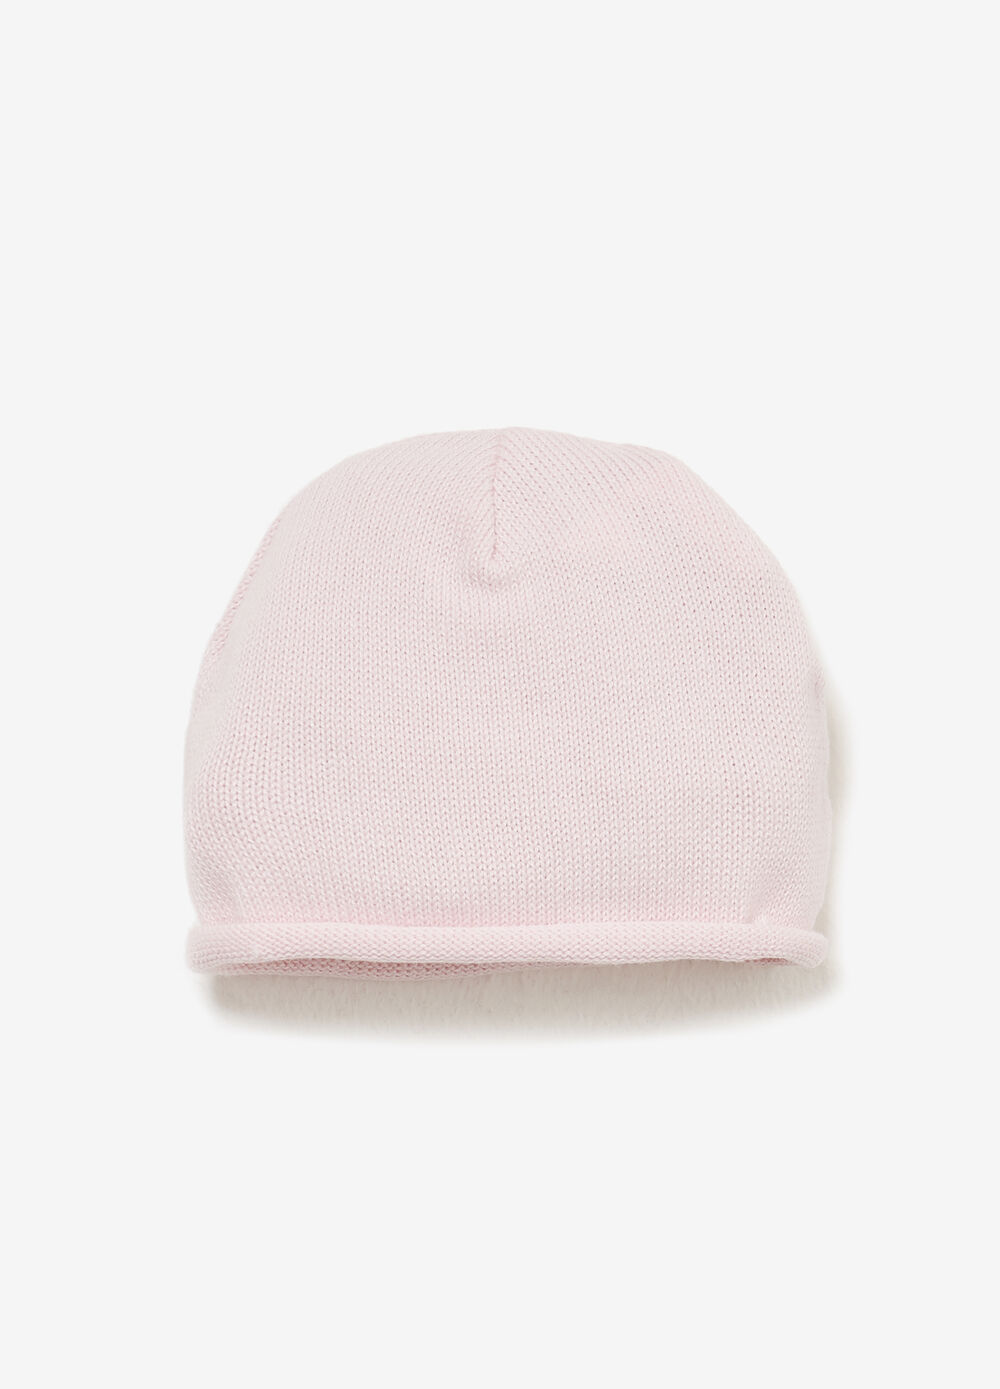 Cotton beanie cap with roll-up brim